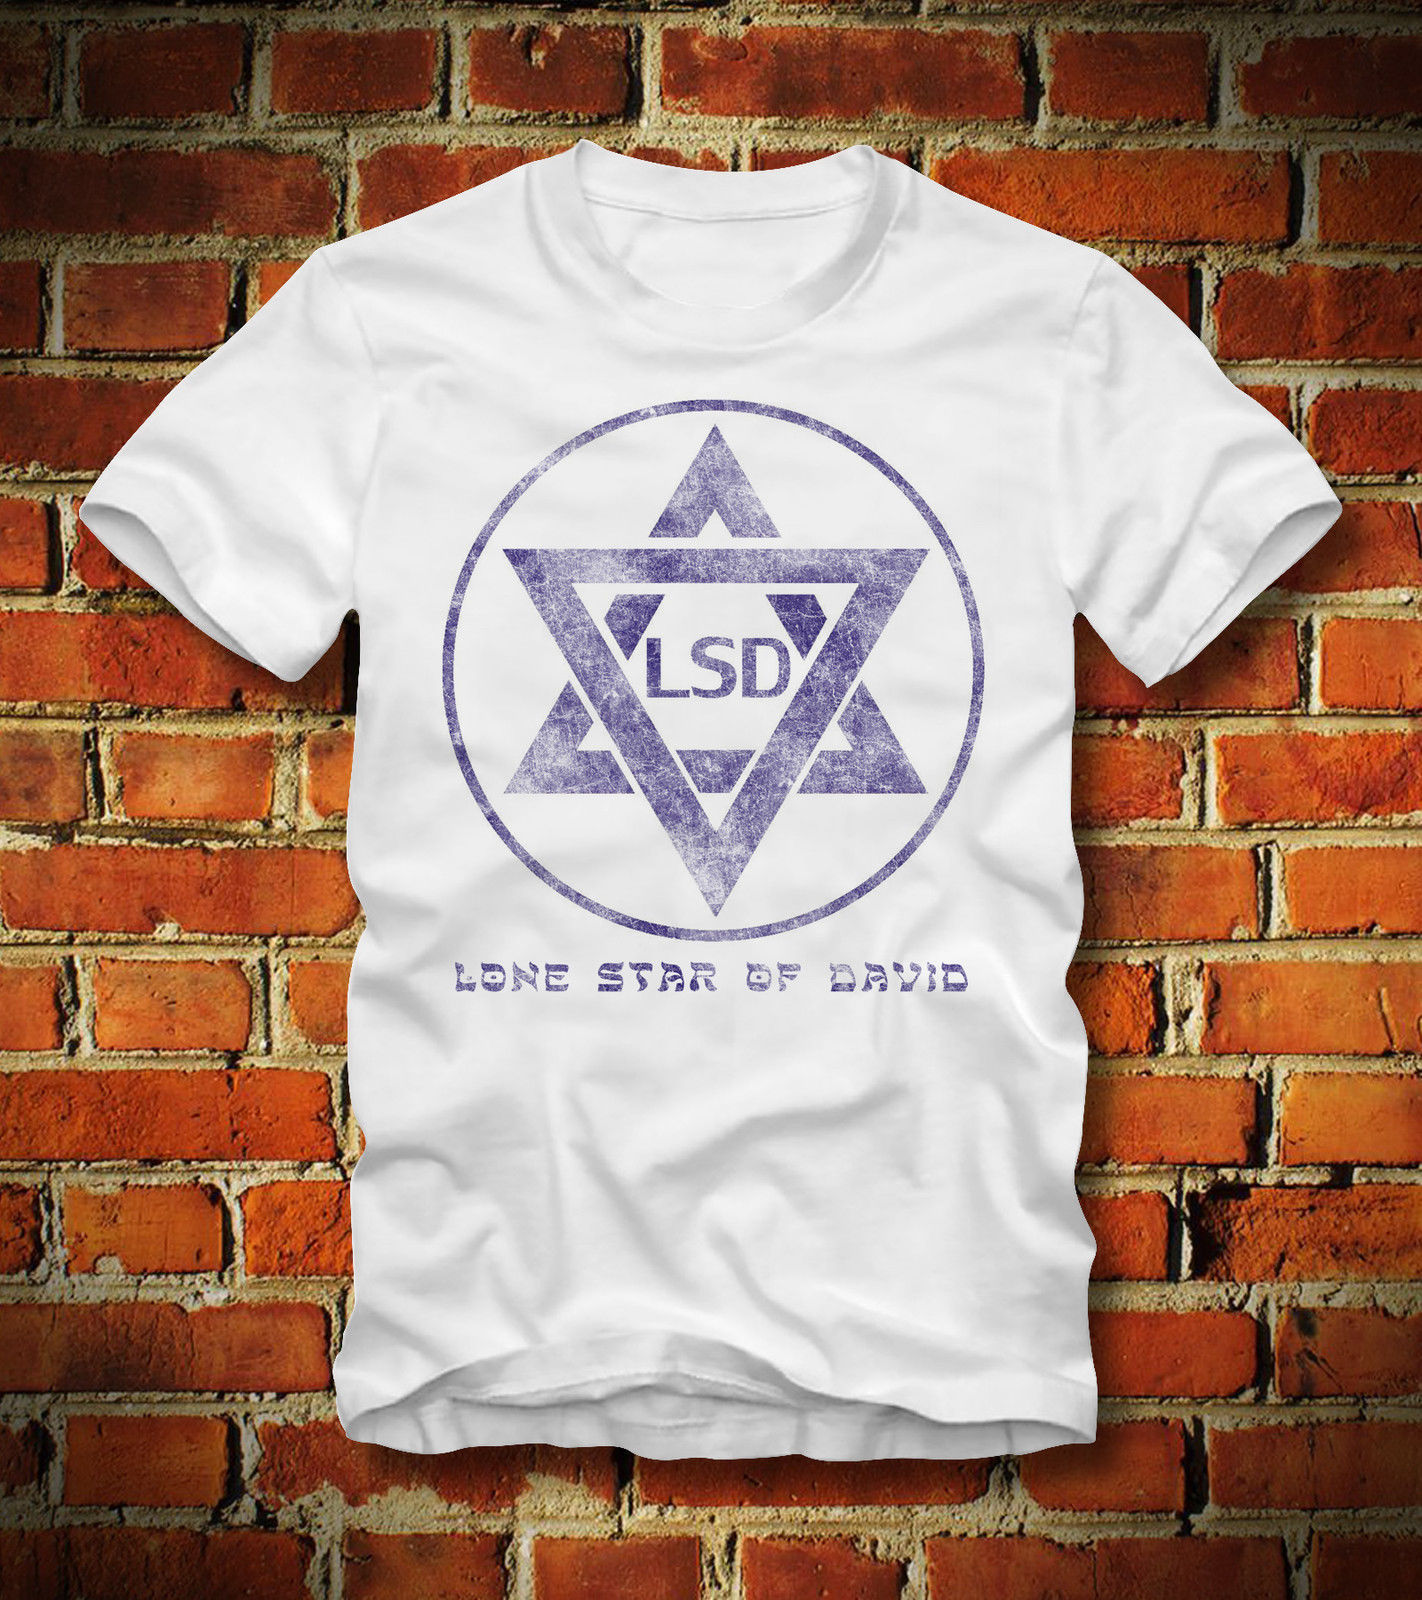 Fashion 100% cotton Hot sale Summer <font><b>T</b></font> <font><b>SHIRT</b></font> <font><b>ISRAEL</b></font> FLAG LSD LONE STAR OF DAVID STERN STAR PSYCHEDELIC Tee <font><b>shirt</b></font> image